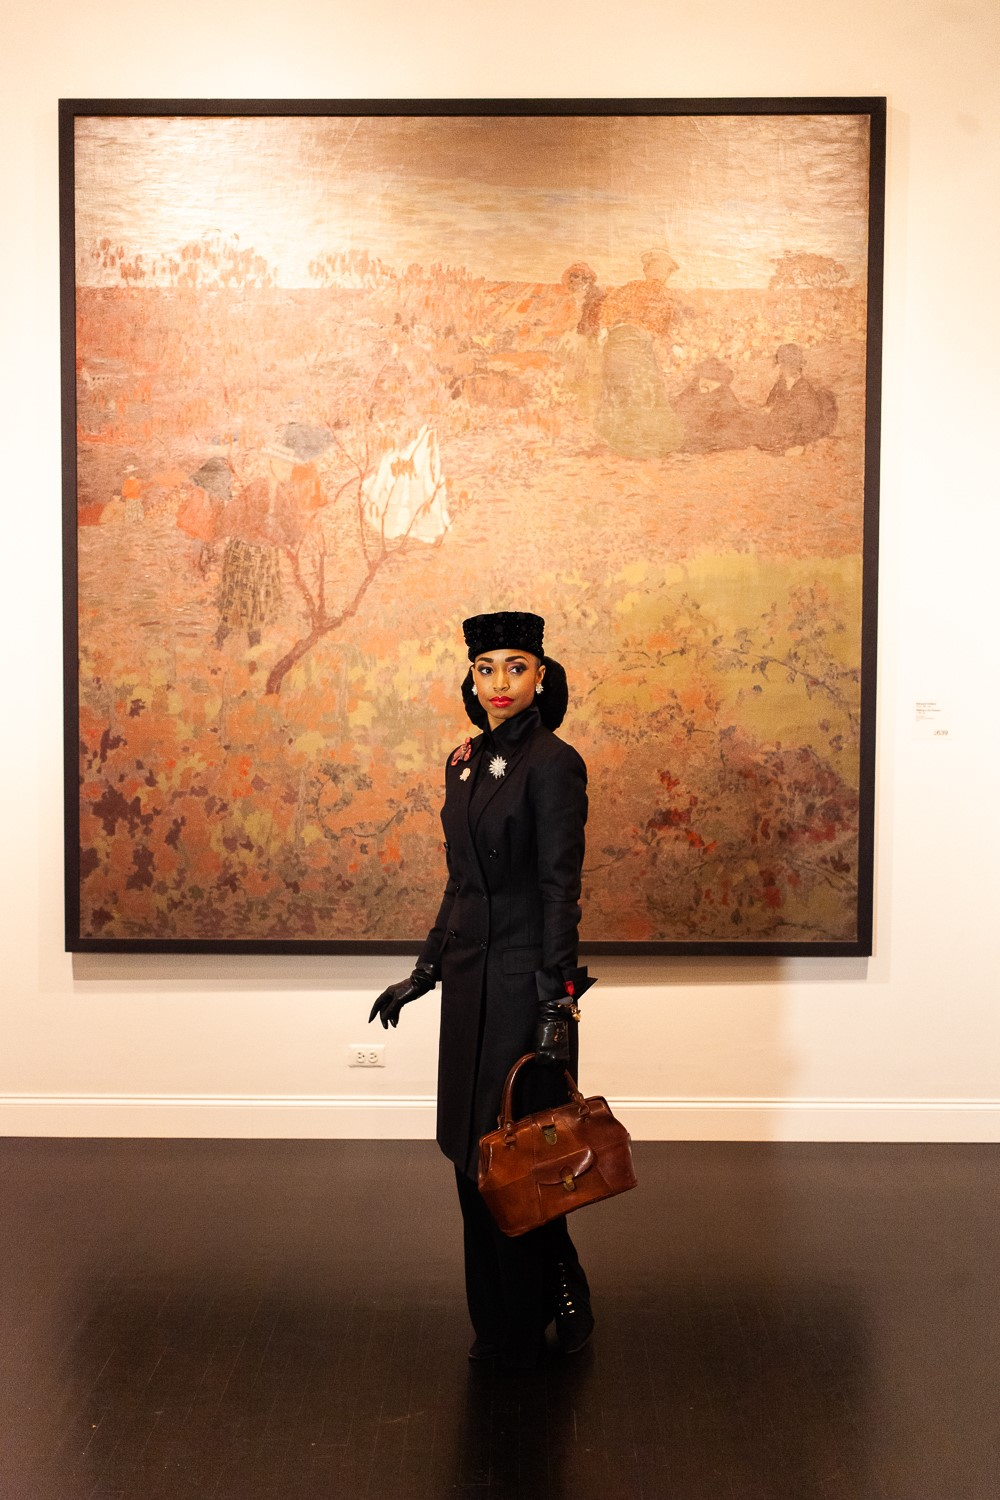 Woman dressed in all black standing in front of large painting